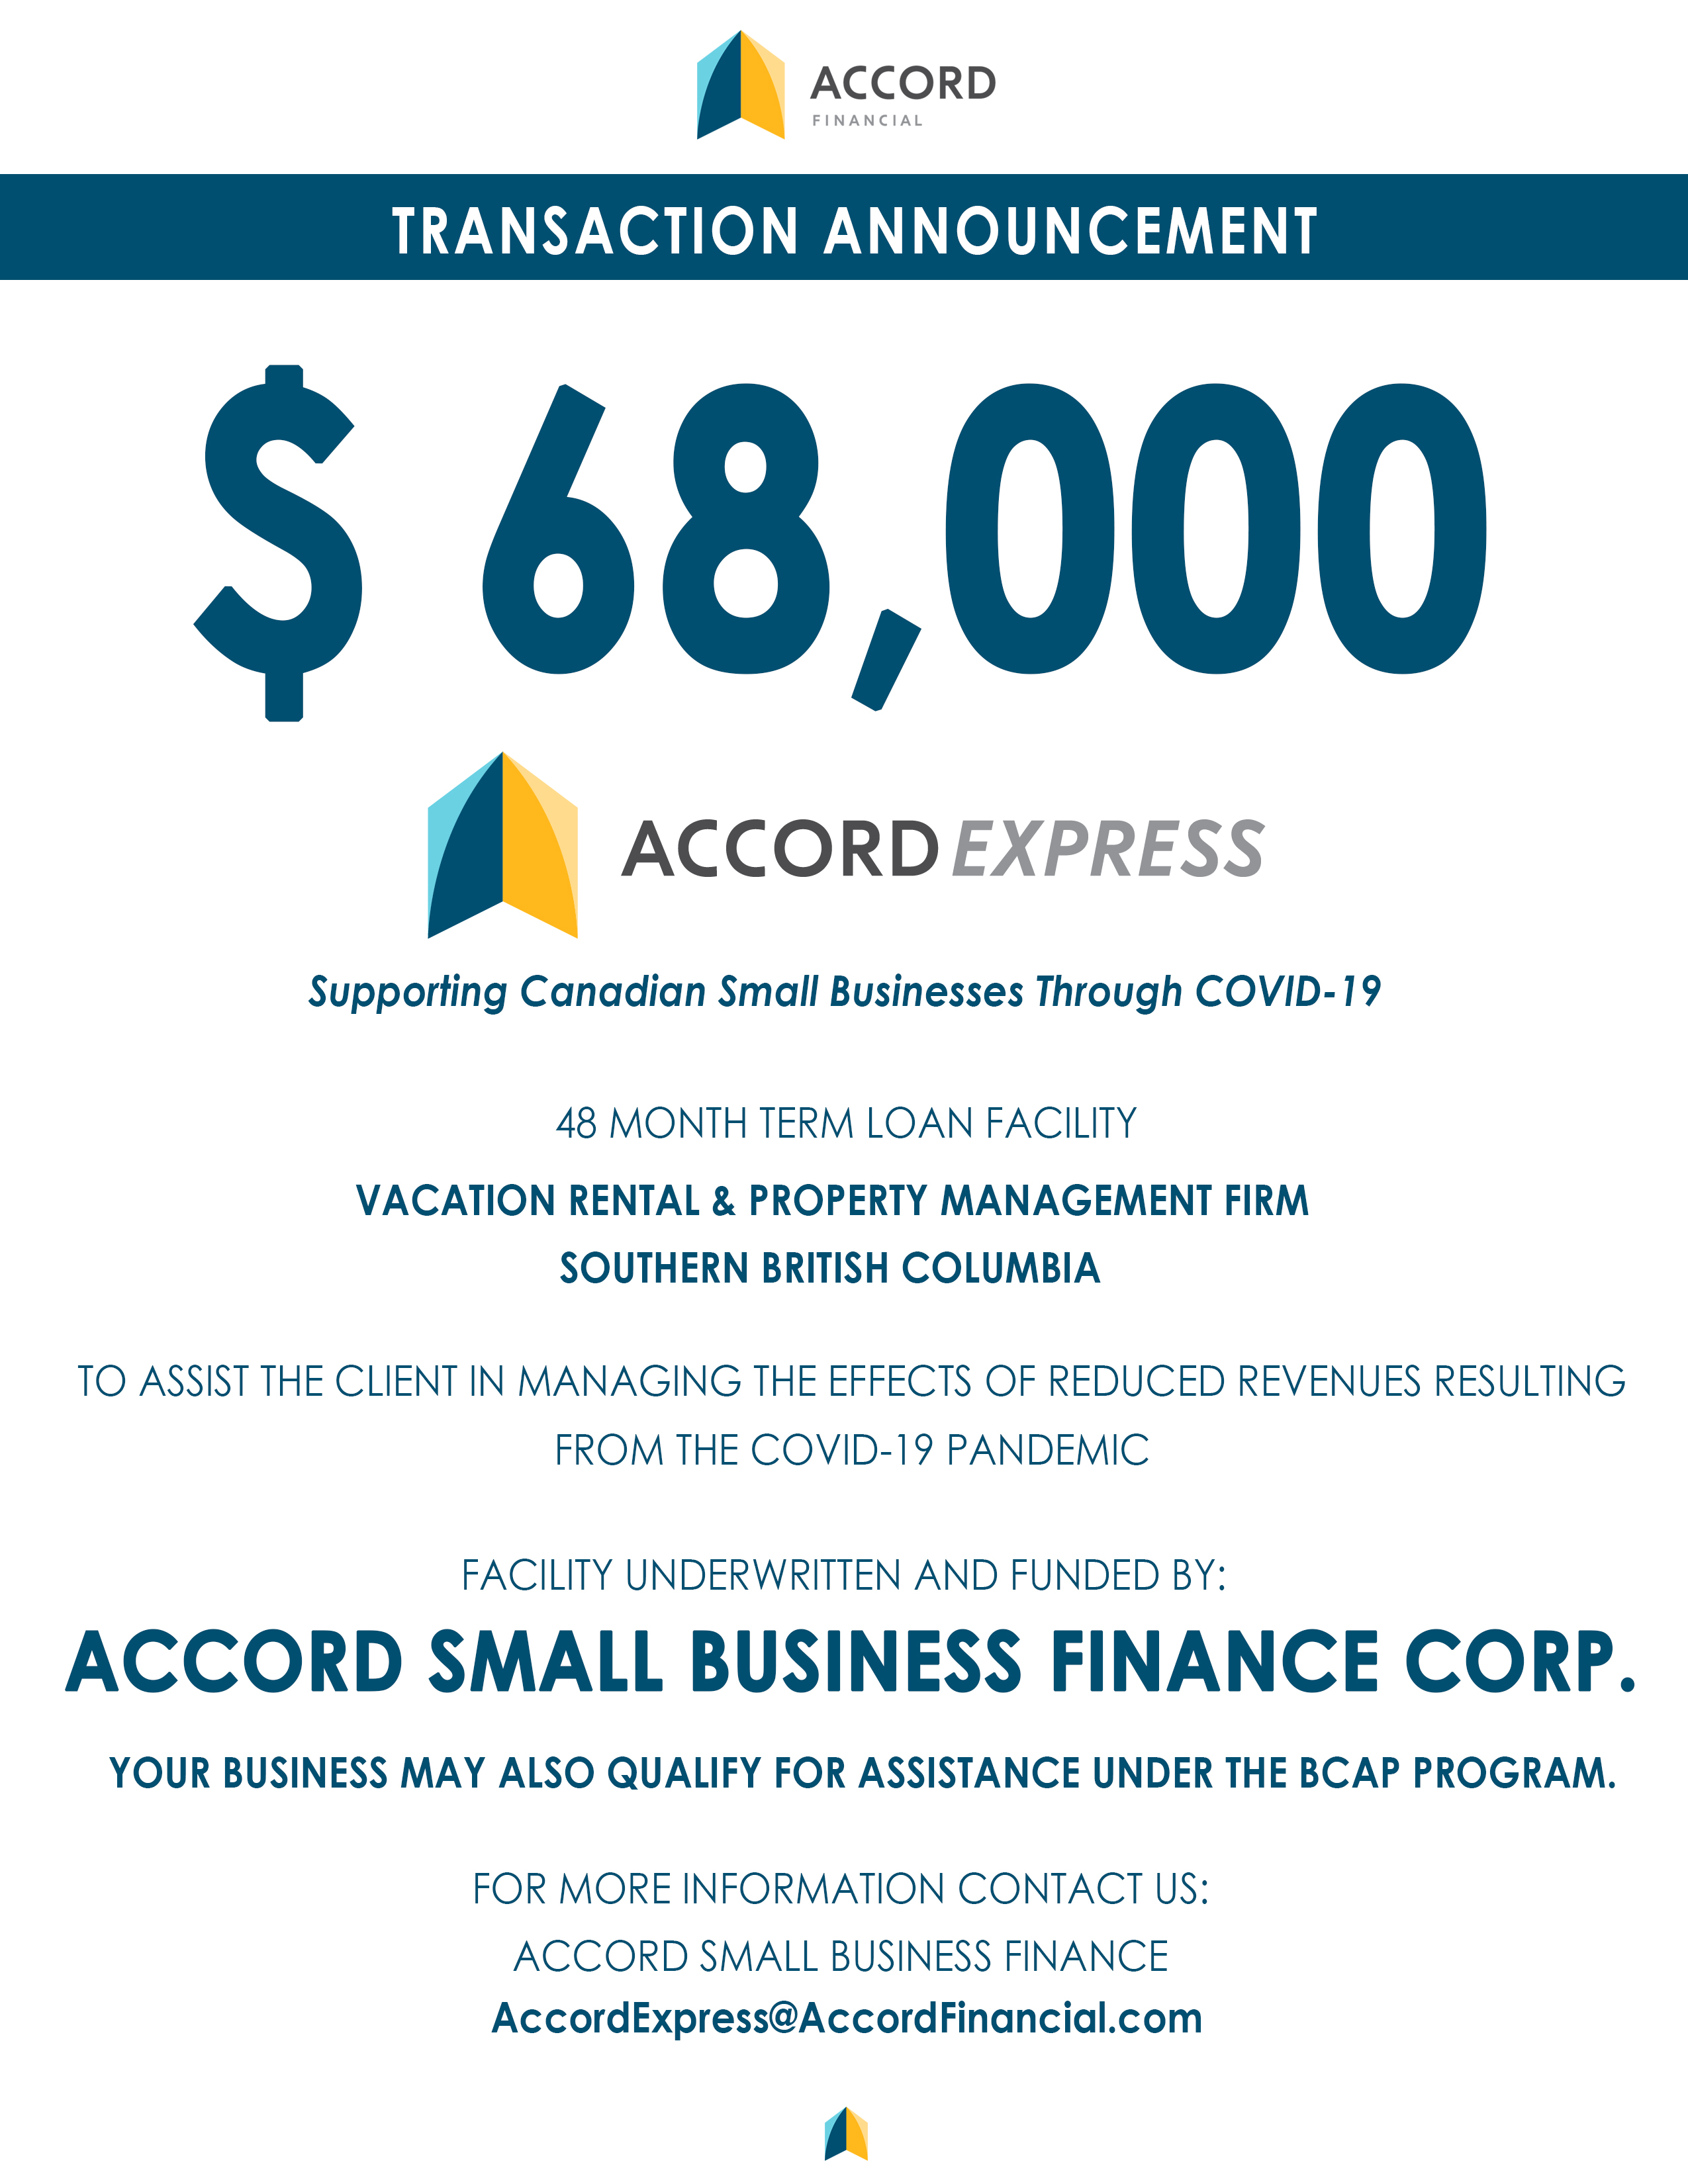 Accord Small Business Finance - Transaction Announcement for the Business Credit Availability (BCAP) Program for a Vacation Rental and Property Management Firm